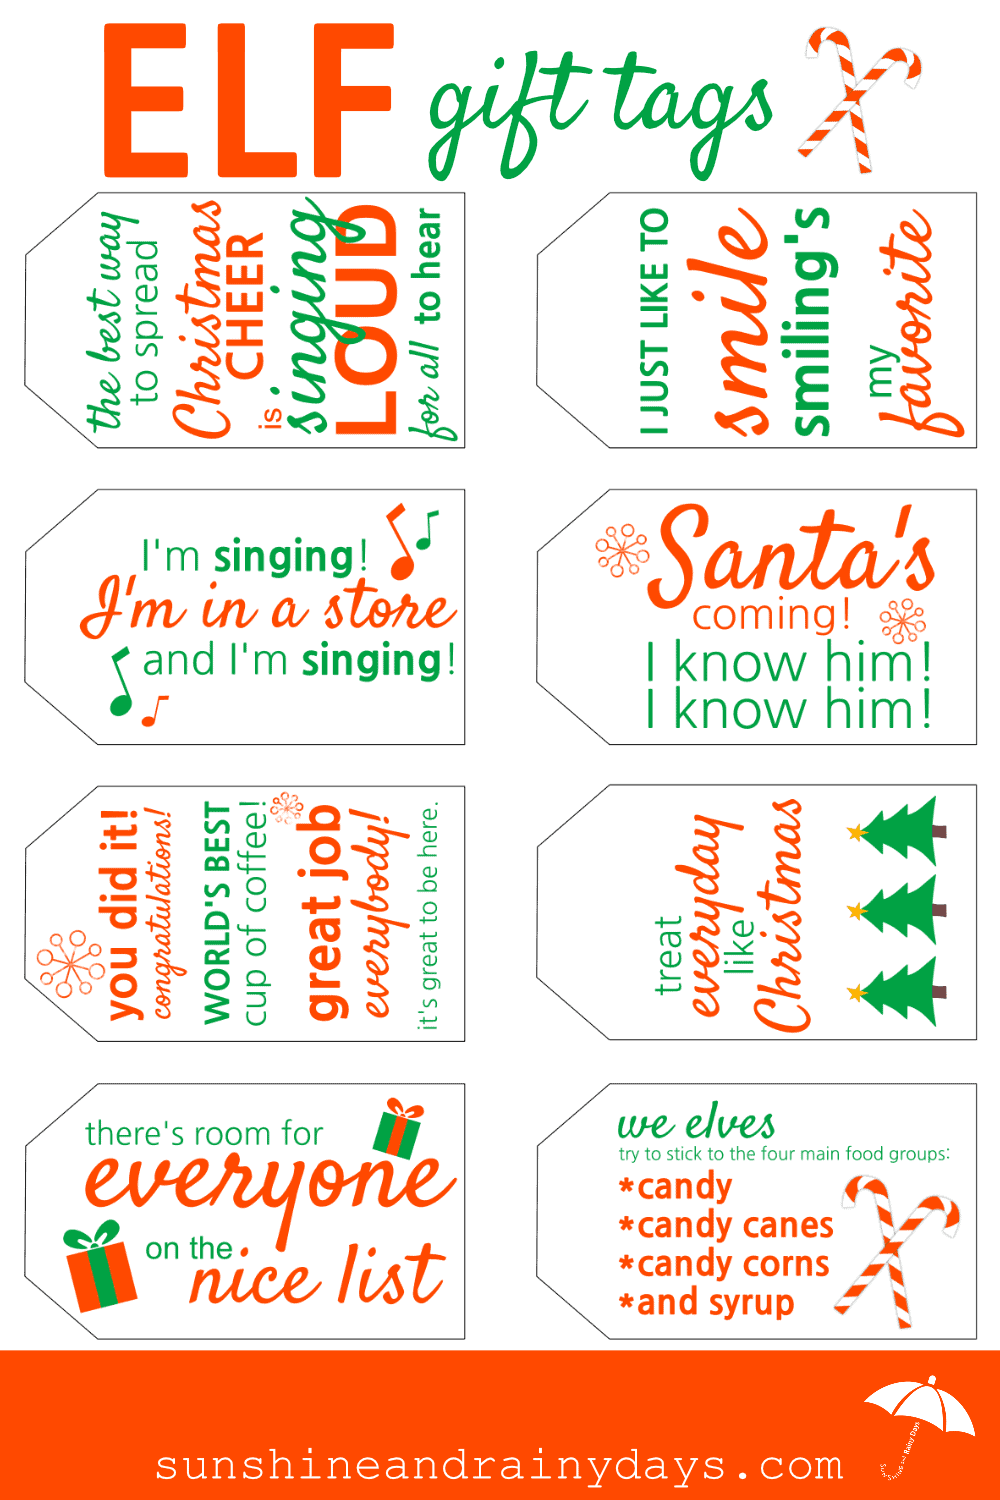 image about Free Printable Santa Gift Tags identified as ELF Reward Tags Cost-free Printable -